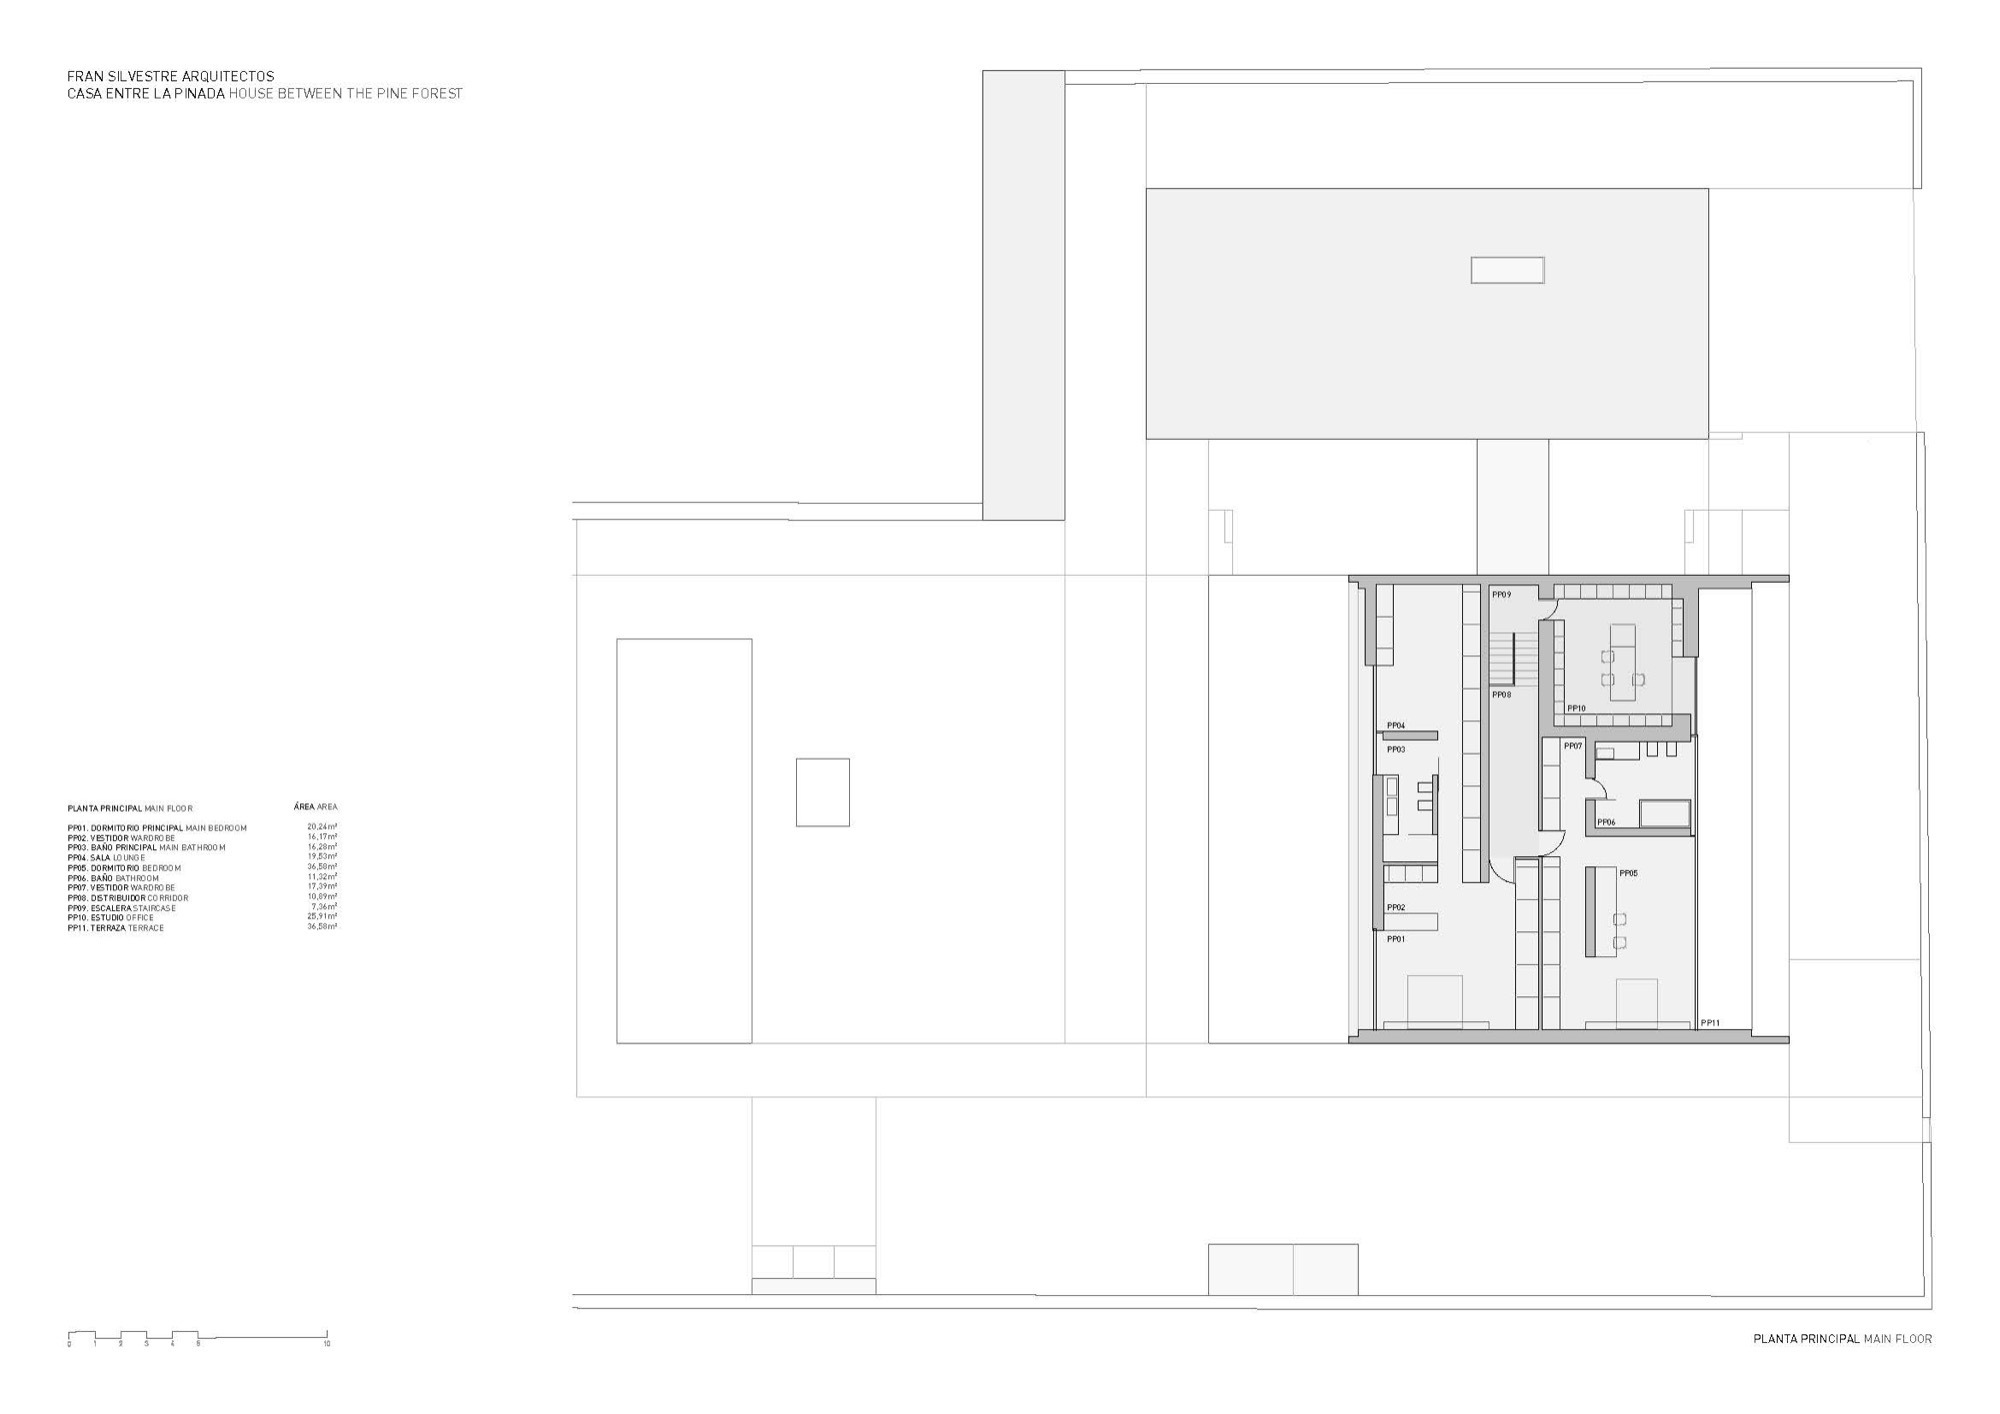 gallery 1 with 57e94389e58ecedcfd000045 La Pinada House Fran Silvestre Arquitectos Plan on Image009 likewise Knk299 00 together with 54f14dcae58ece7e10000231 Second Floor Plan in addition Angelineantigua additionally 53290280c07a8006ff00006f Dragon Court Village Eureka Detail Section.